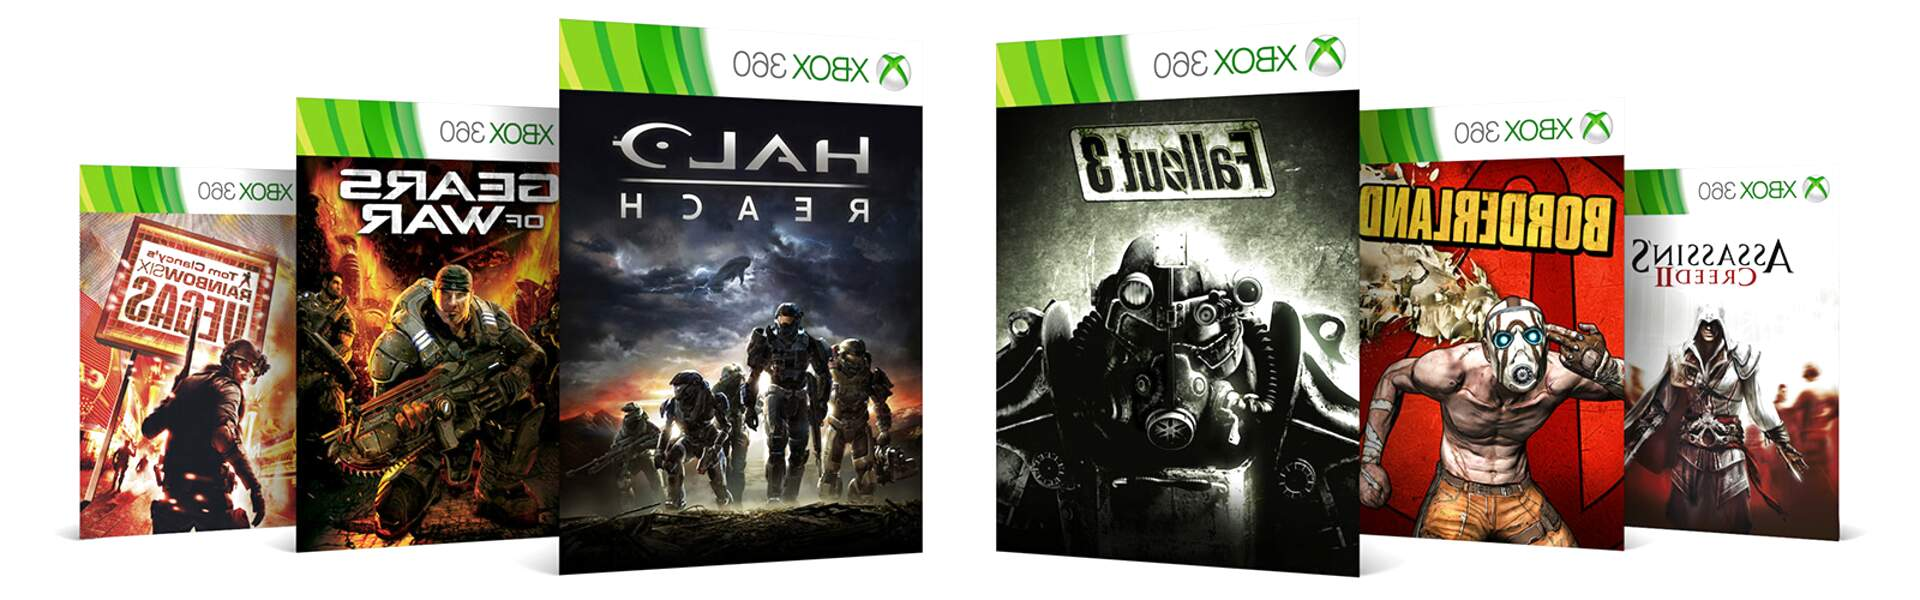 xbox 360 video games for sale